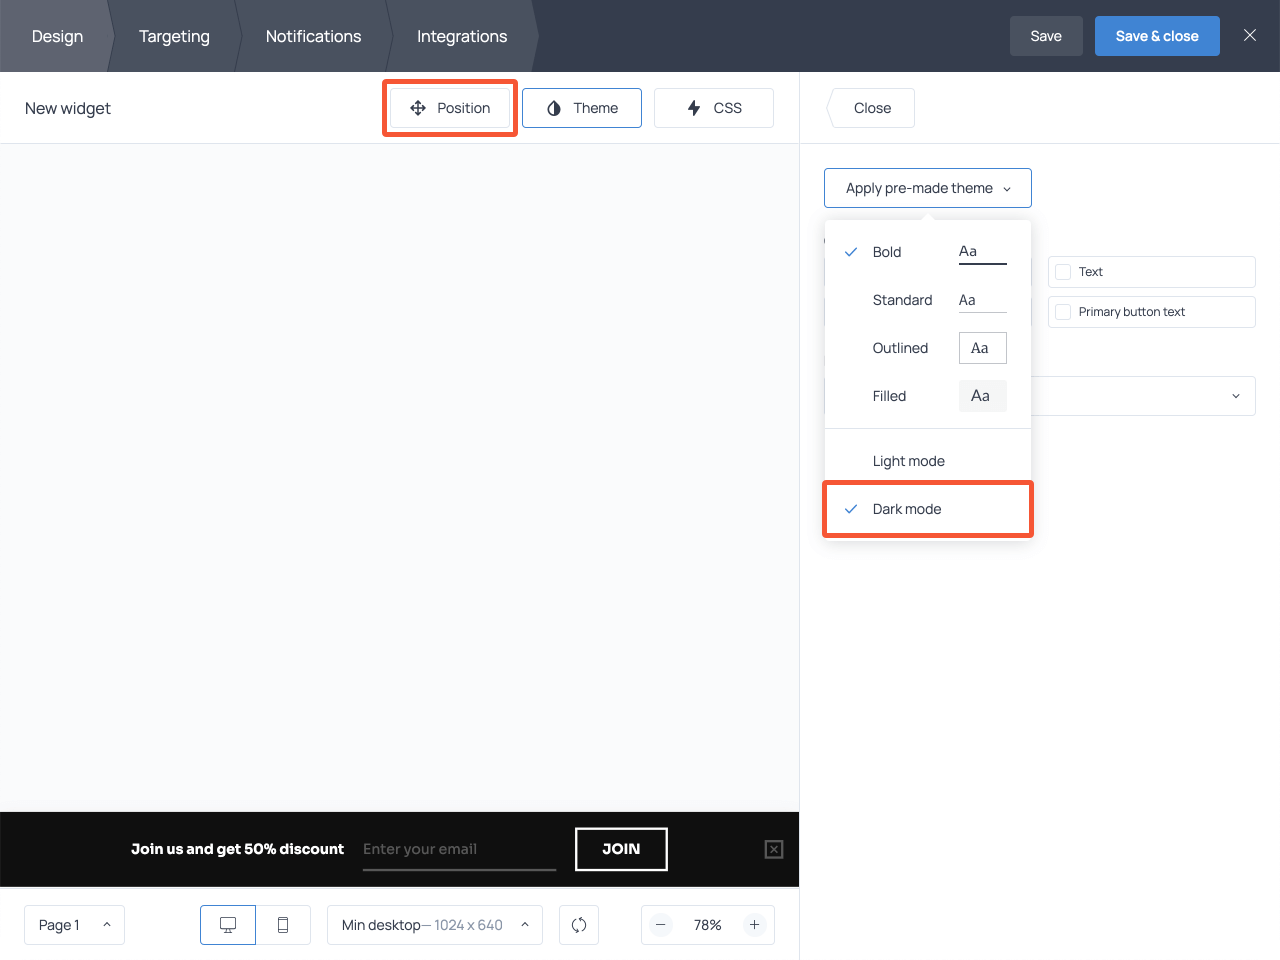 How to adjust the design of a floating email capture form in Getsitecontrol